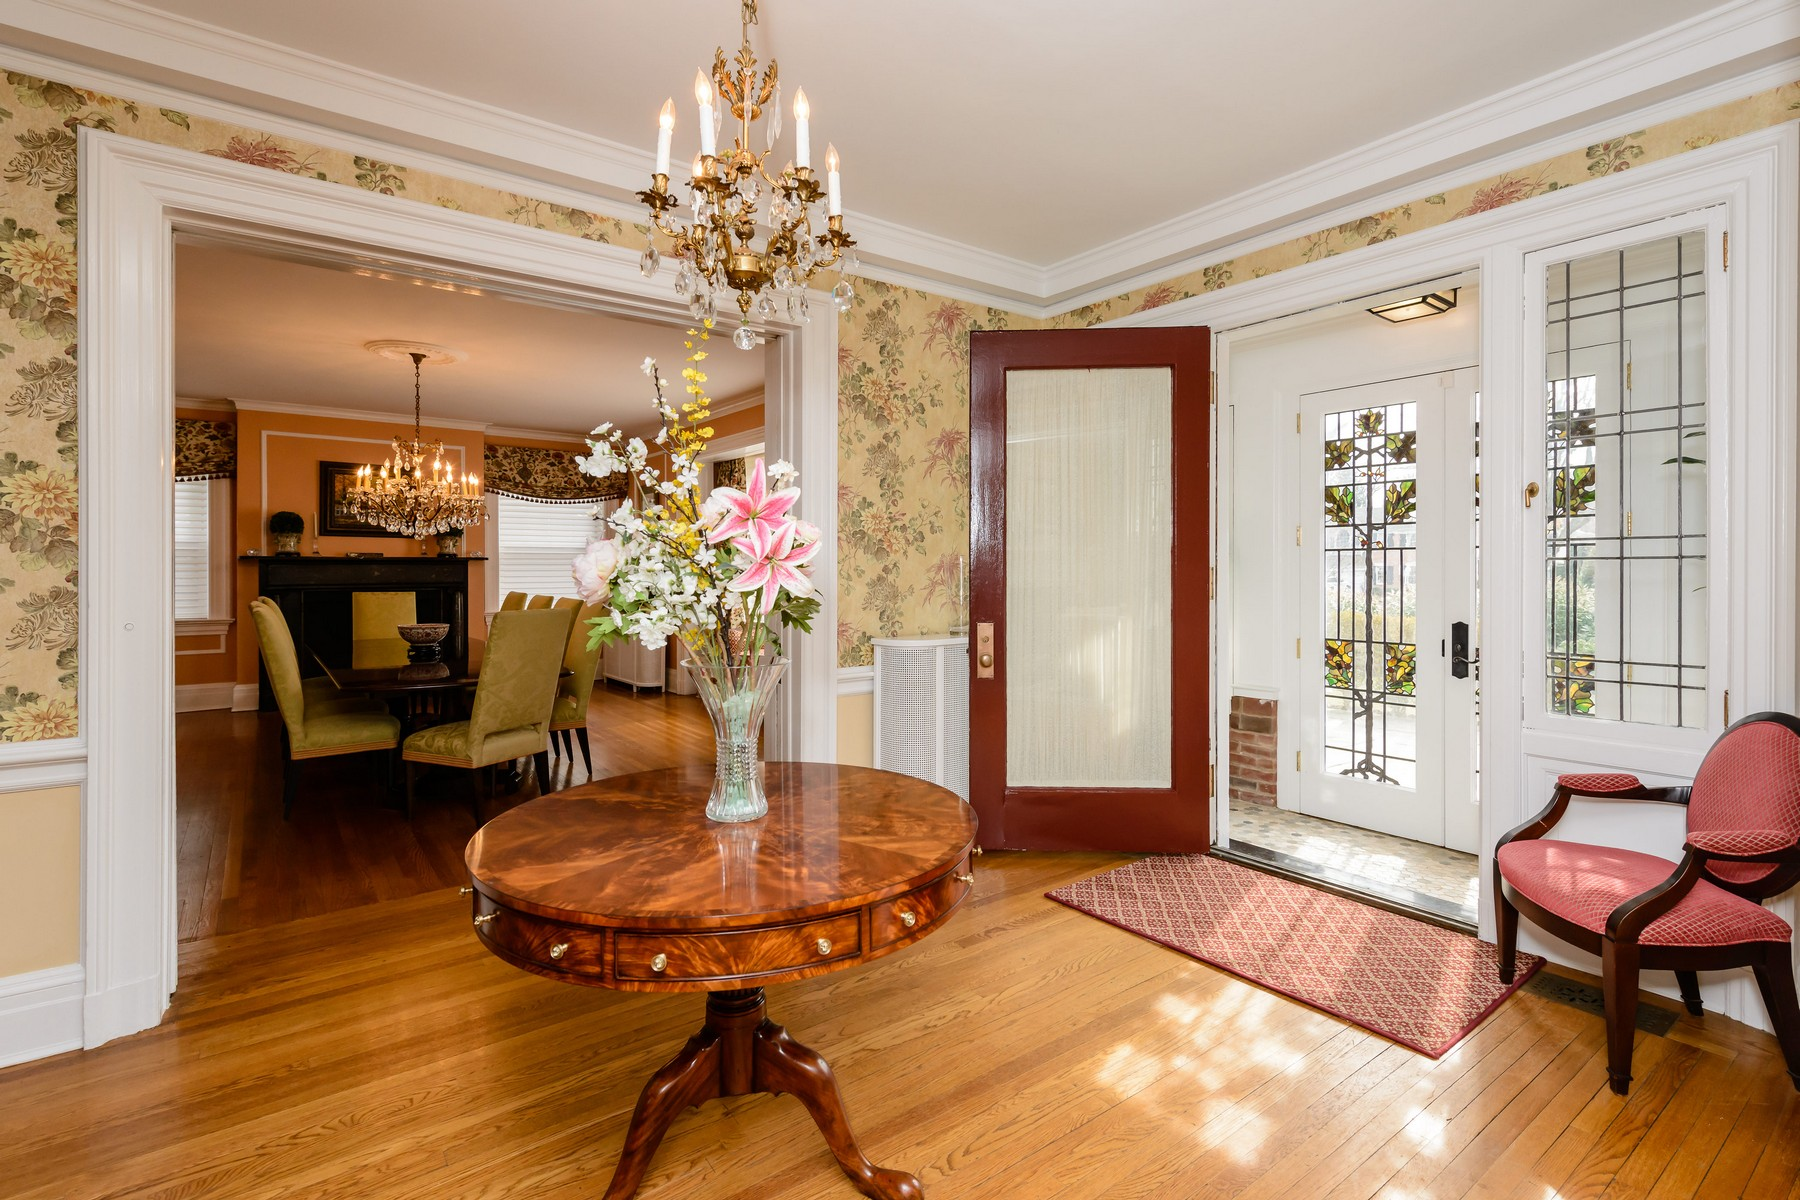 Single Family Homes for Sale at Garden City 83 Third Street Garden City, New York 11530 United States